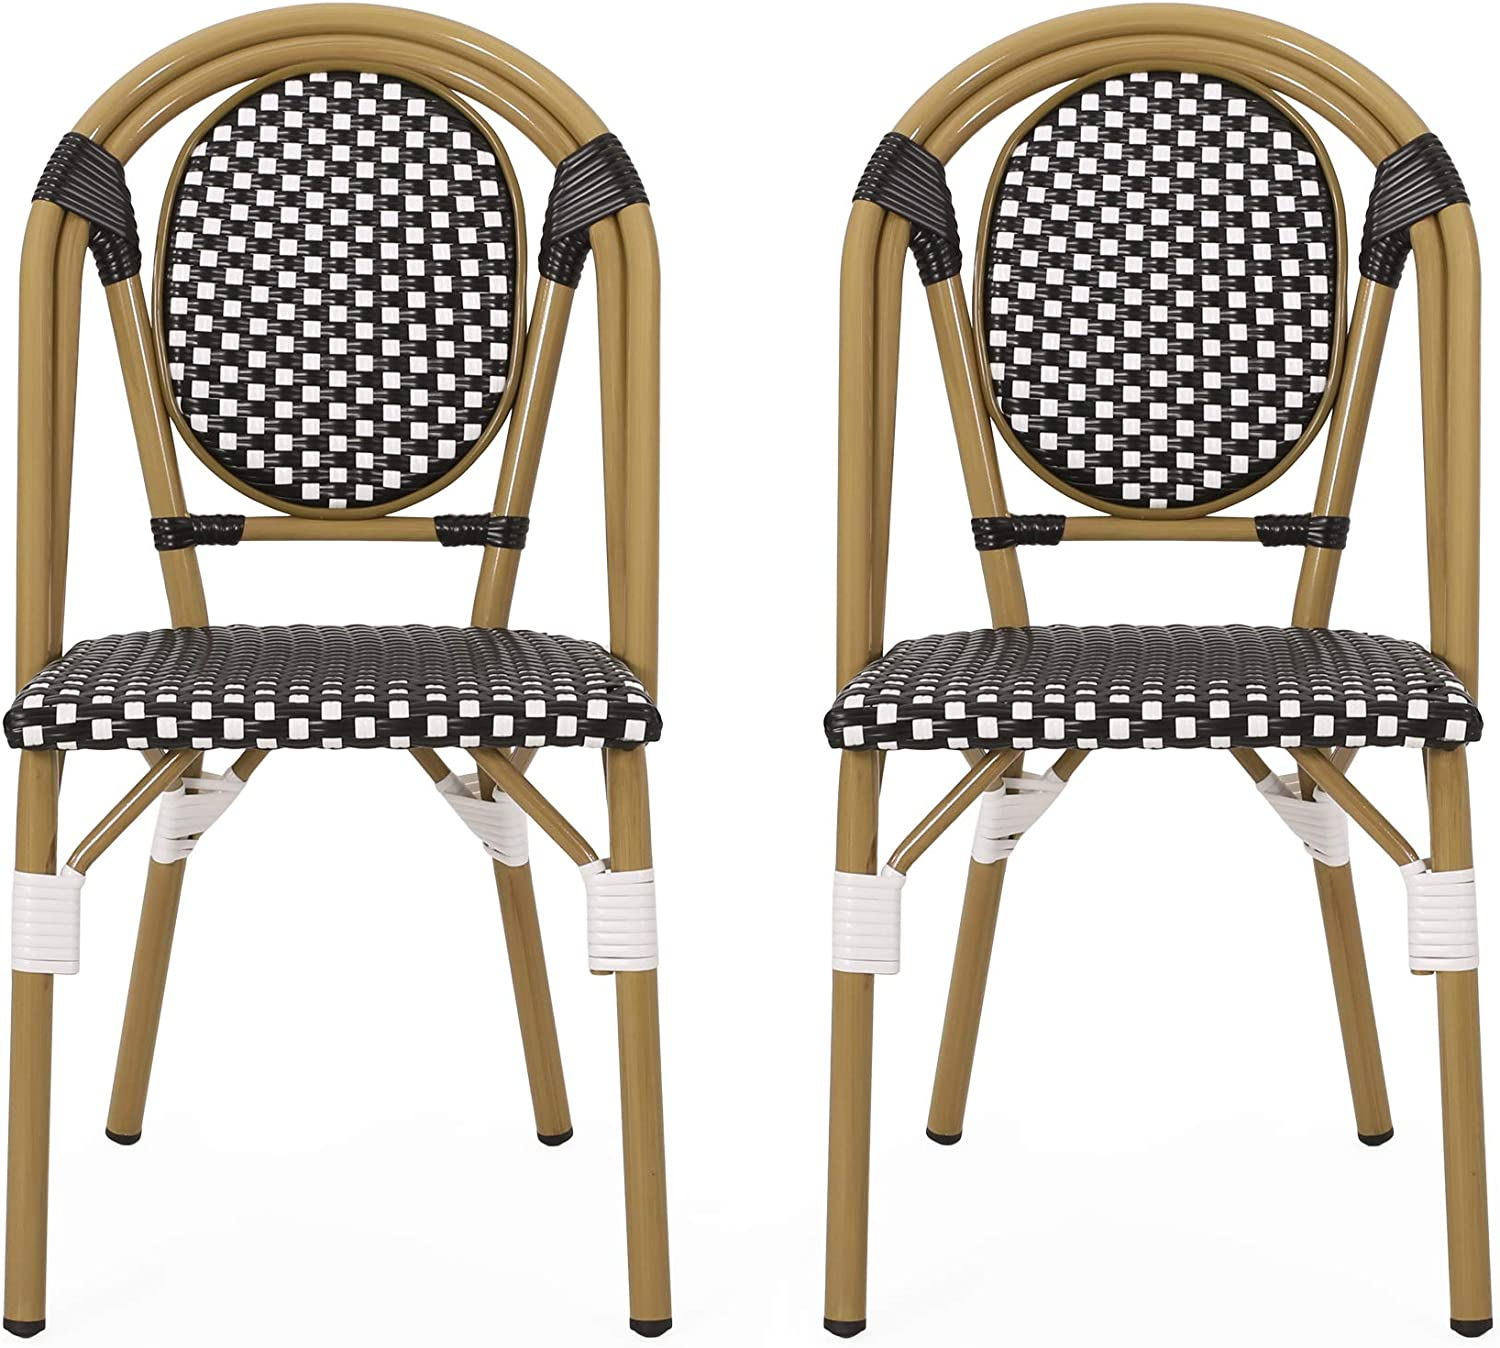 Amazon Com Christopher Knight Home 313247 Gwendolyn Outdoor French Bistro Chairs Set Of 2 Black White Bamboo Print Finish Garden Outdoor